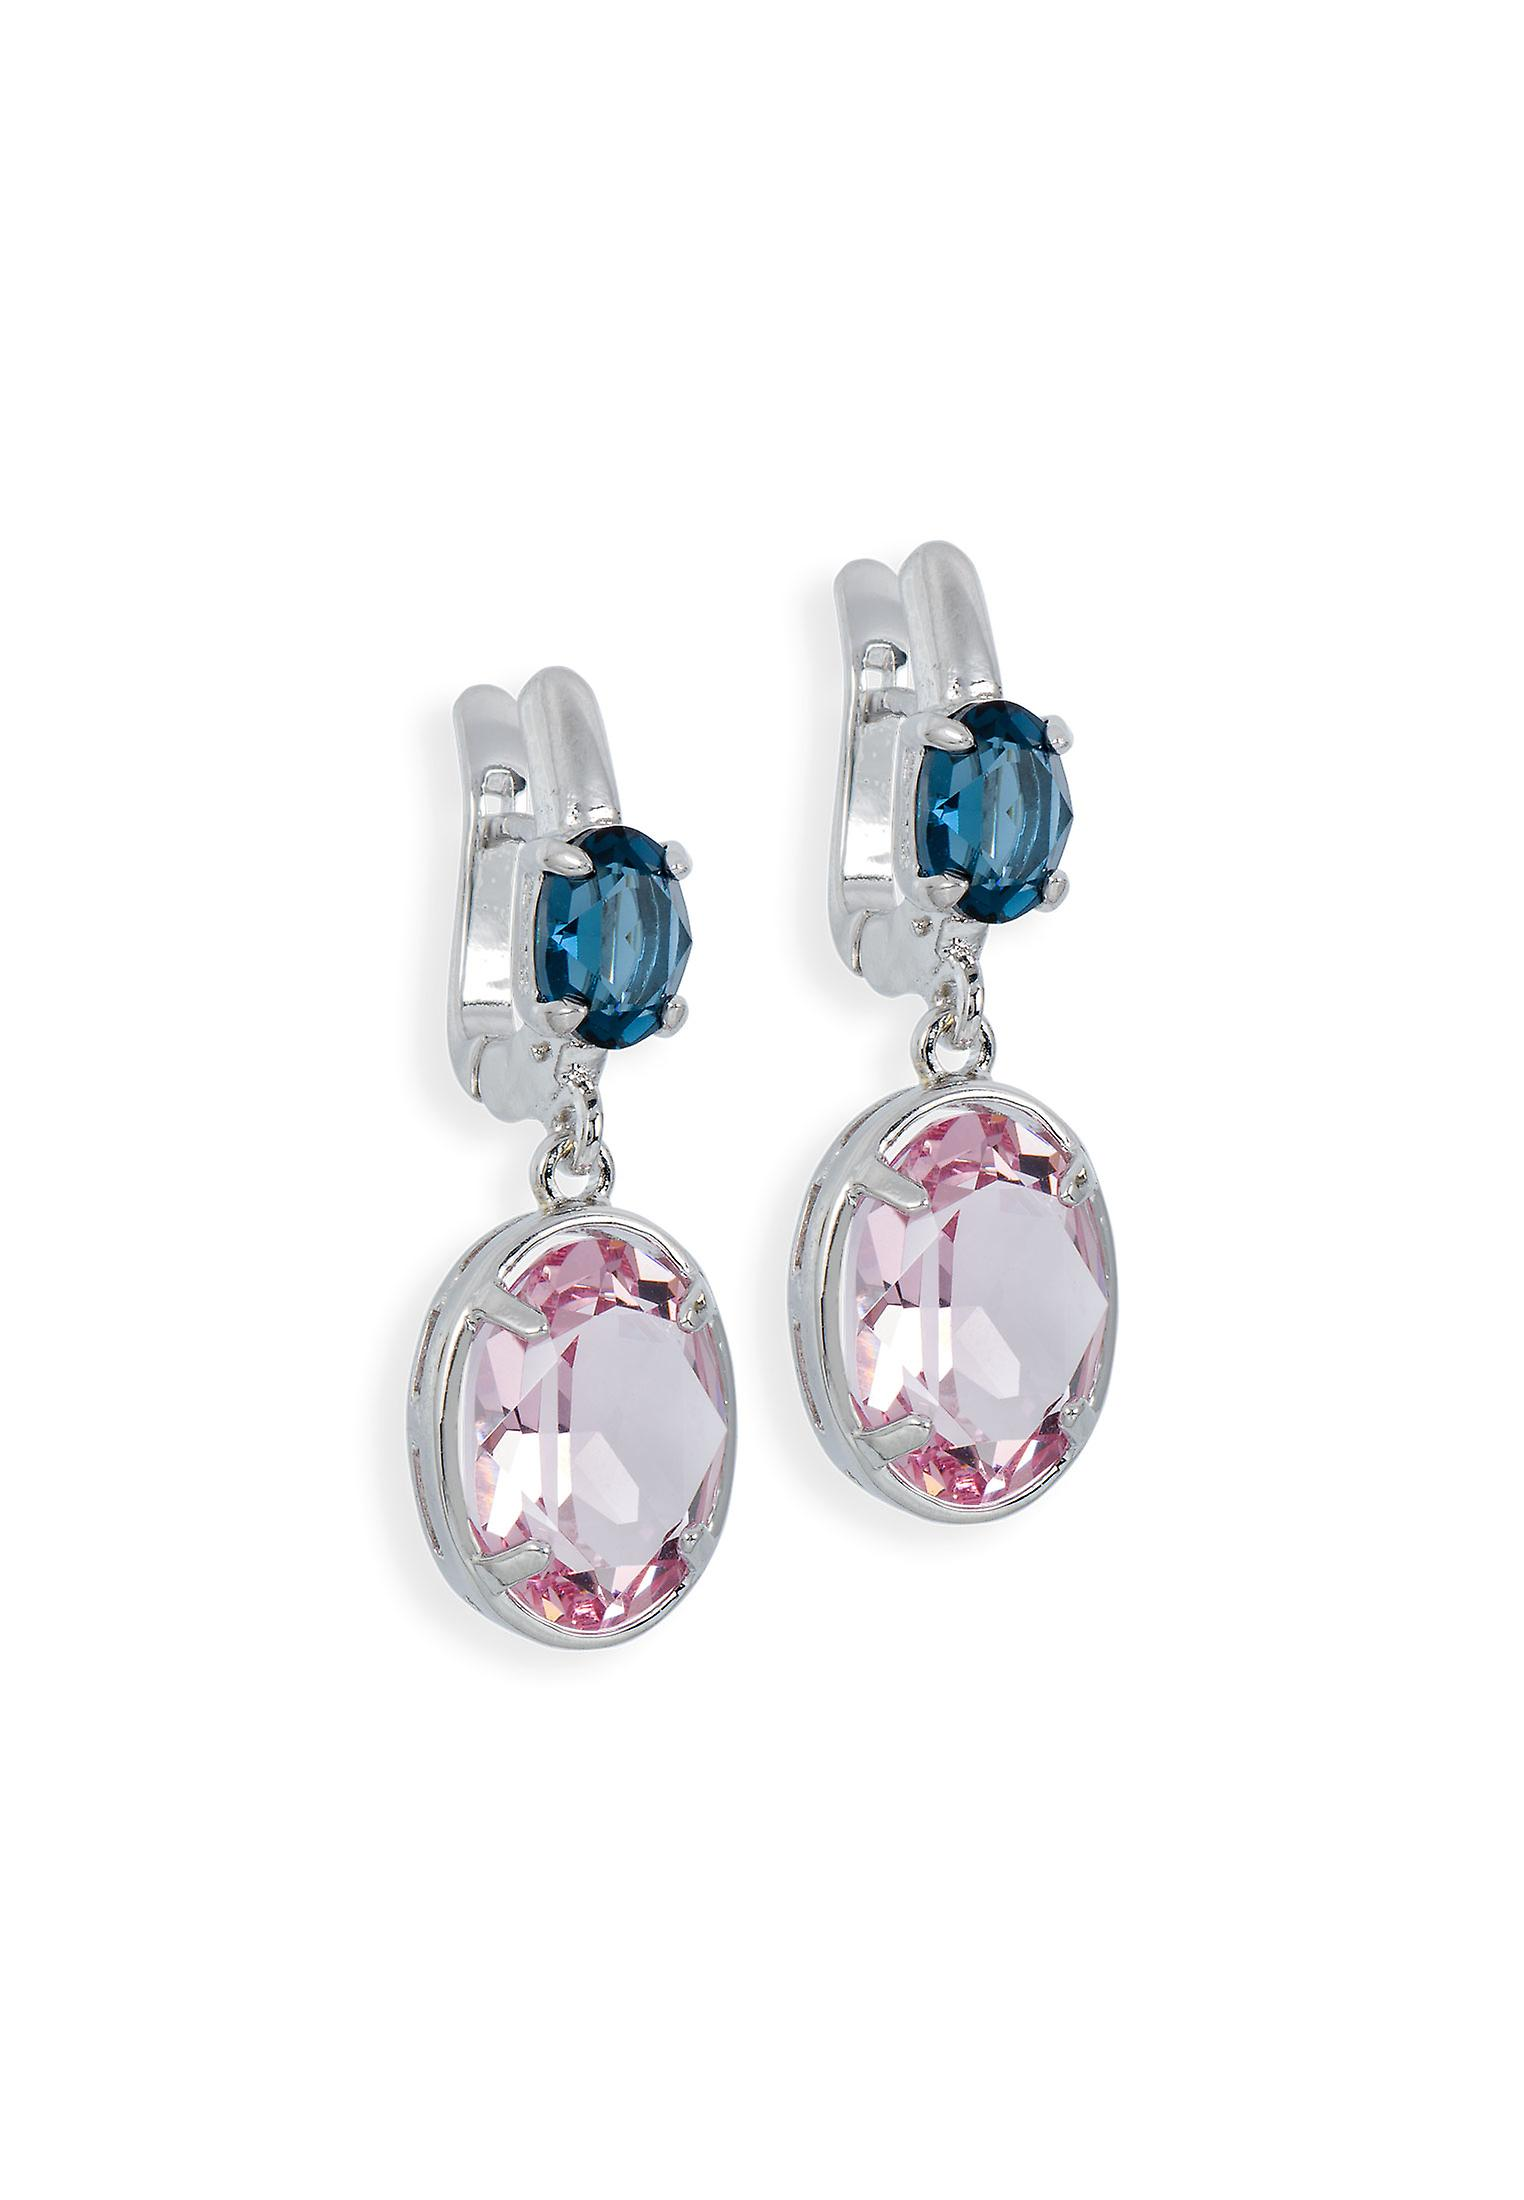 Multicolor earrings with crystals from Swarovski 4758